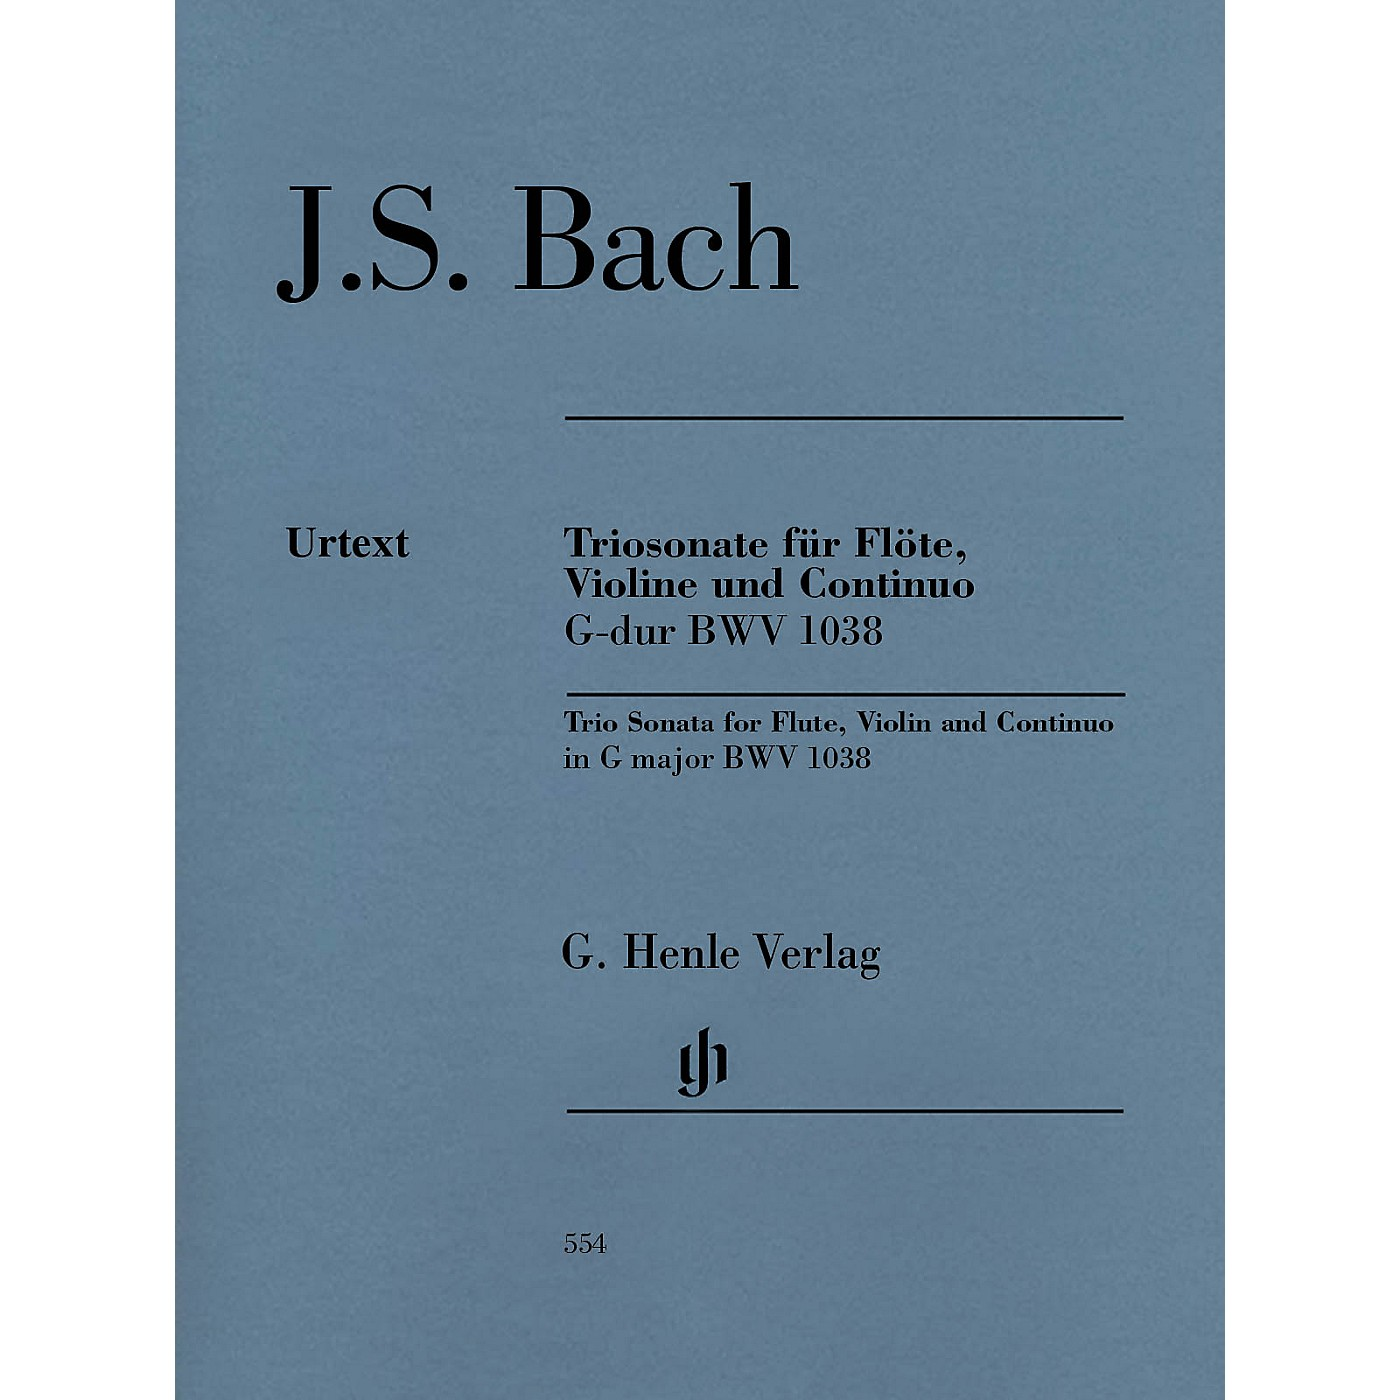 G. Henle Verlag Trio Sonata for Flute, Violin and Continuo BWV 1038 Henle Music Softcover by Bach Edited by Peter Wollny thumbnail